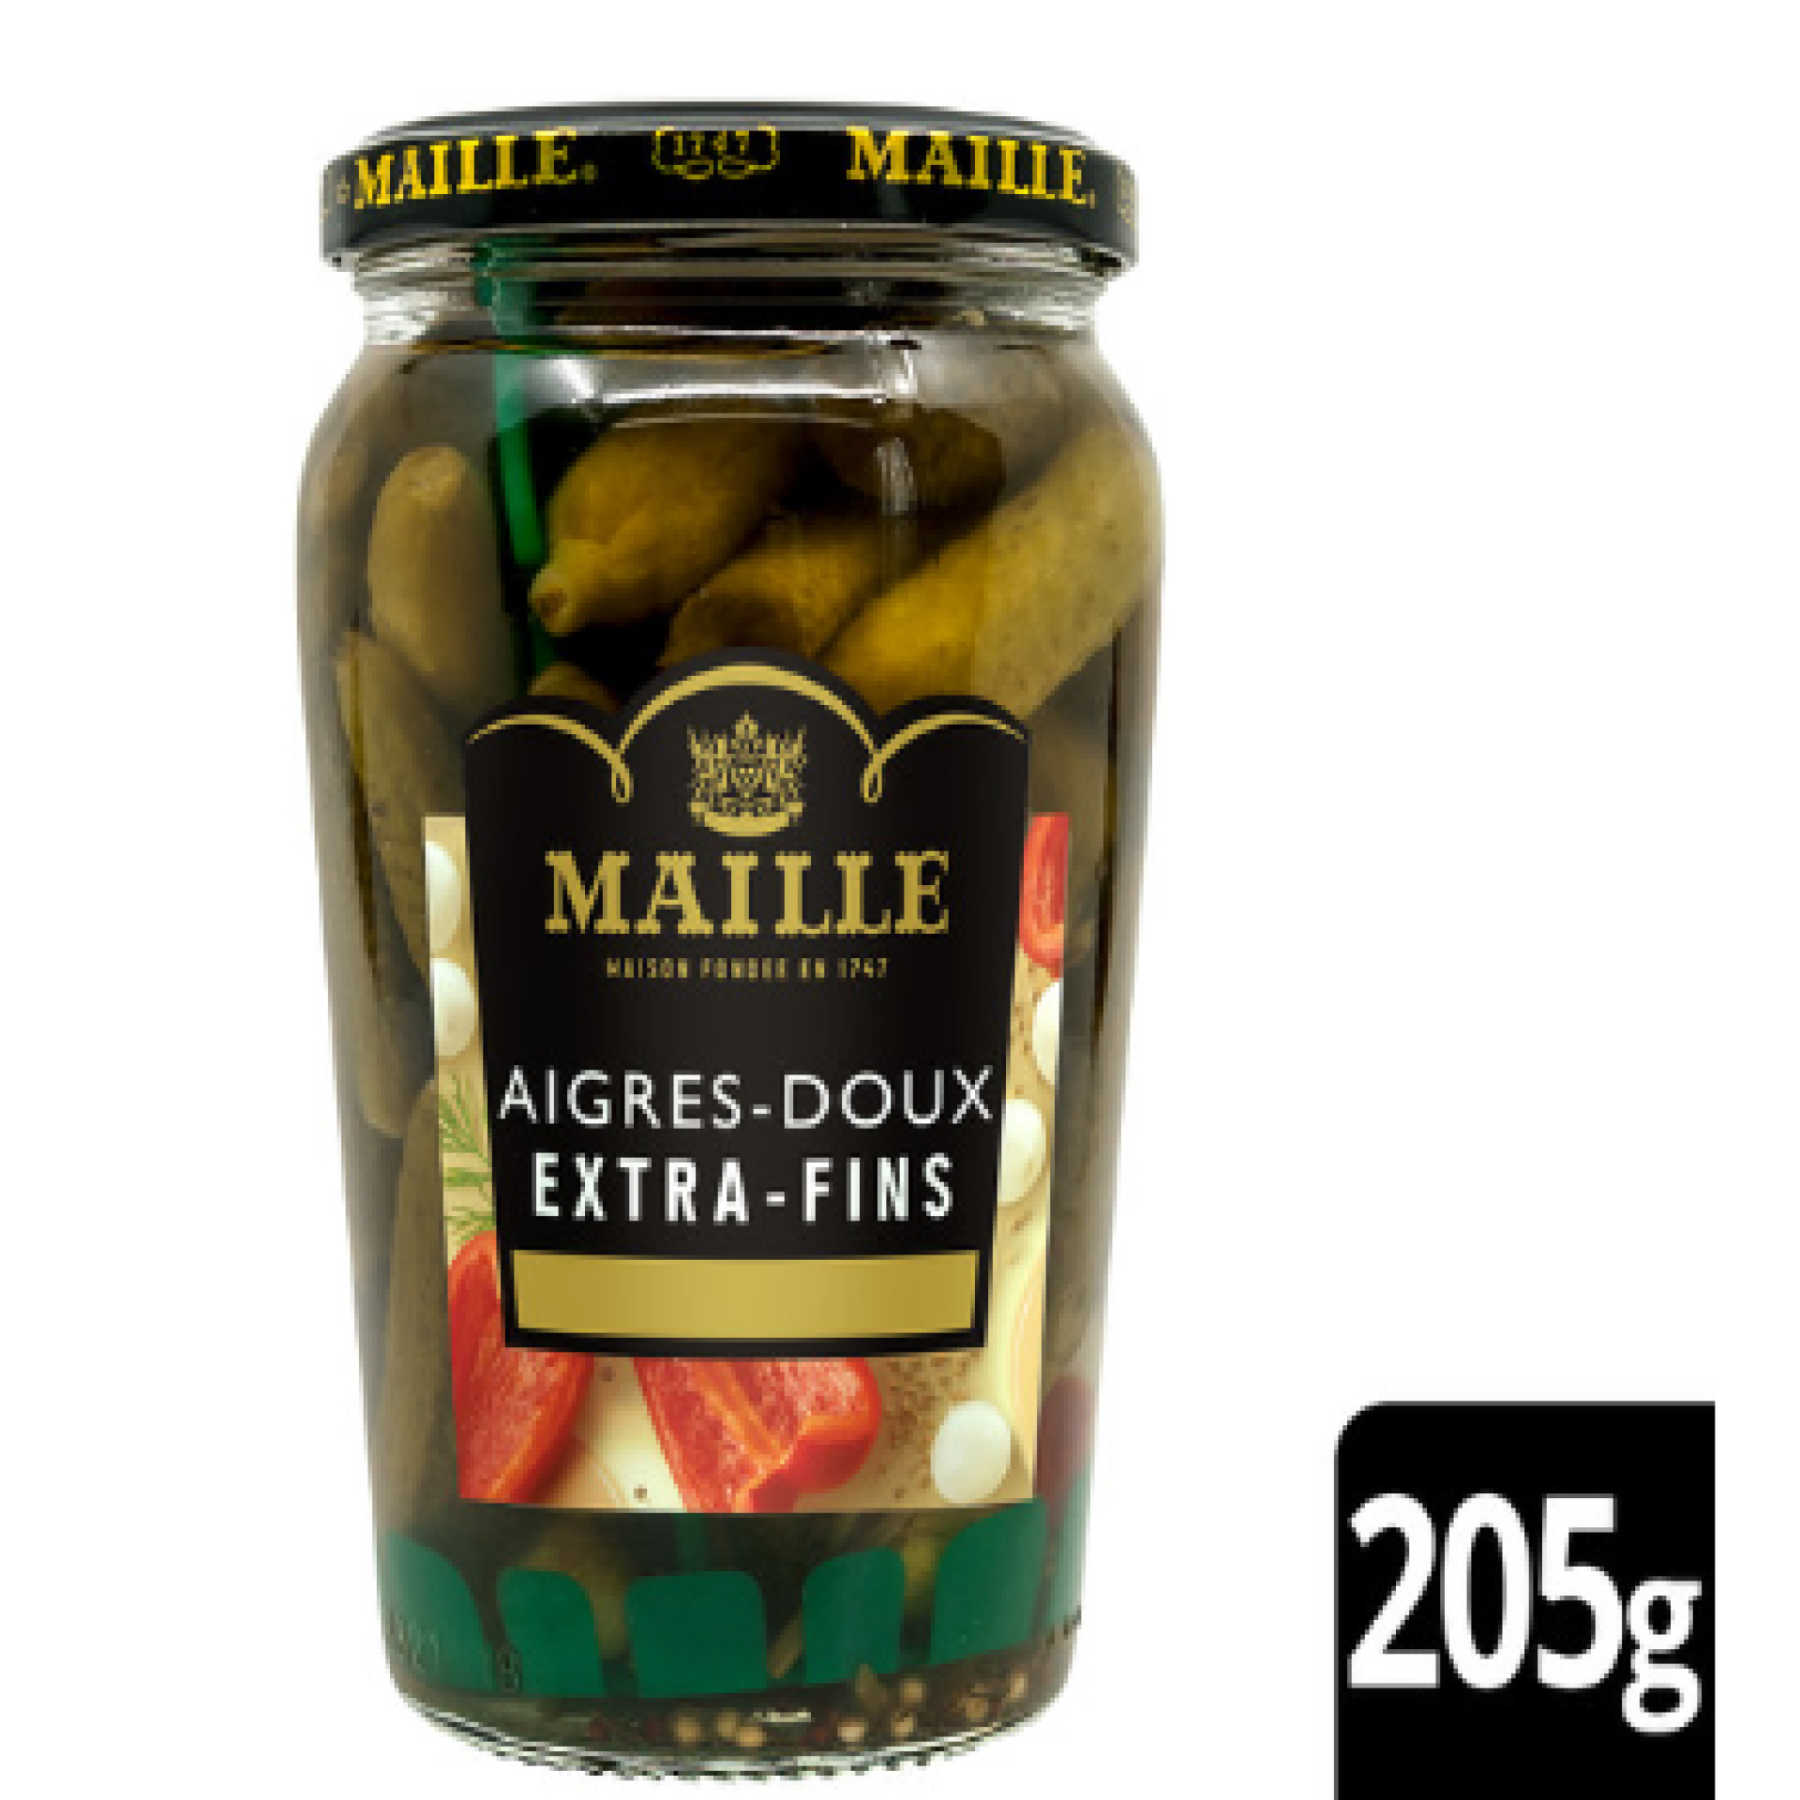 Maille - Cornichons aigres-doux extra-fin, 205 g